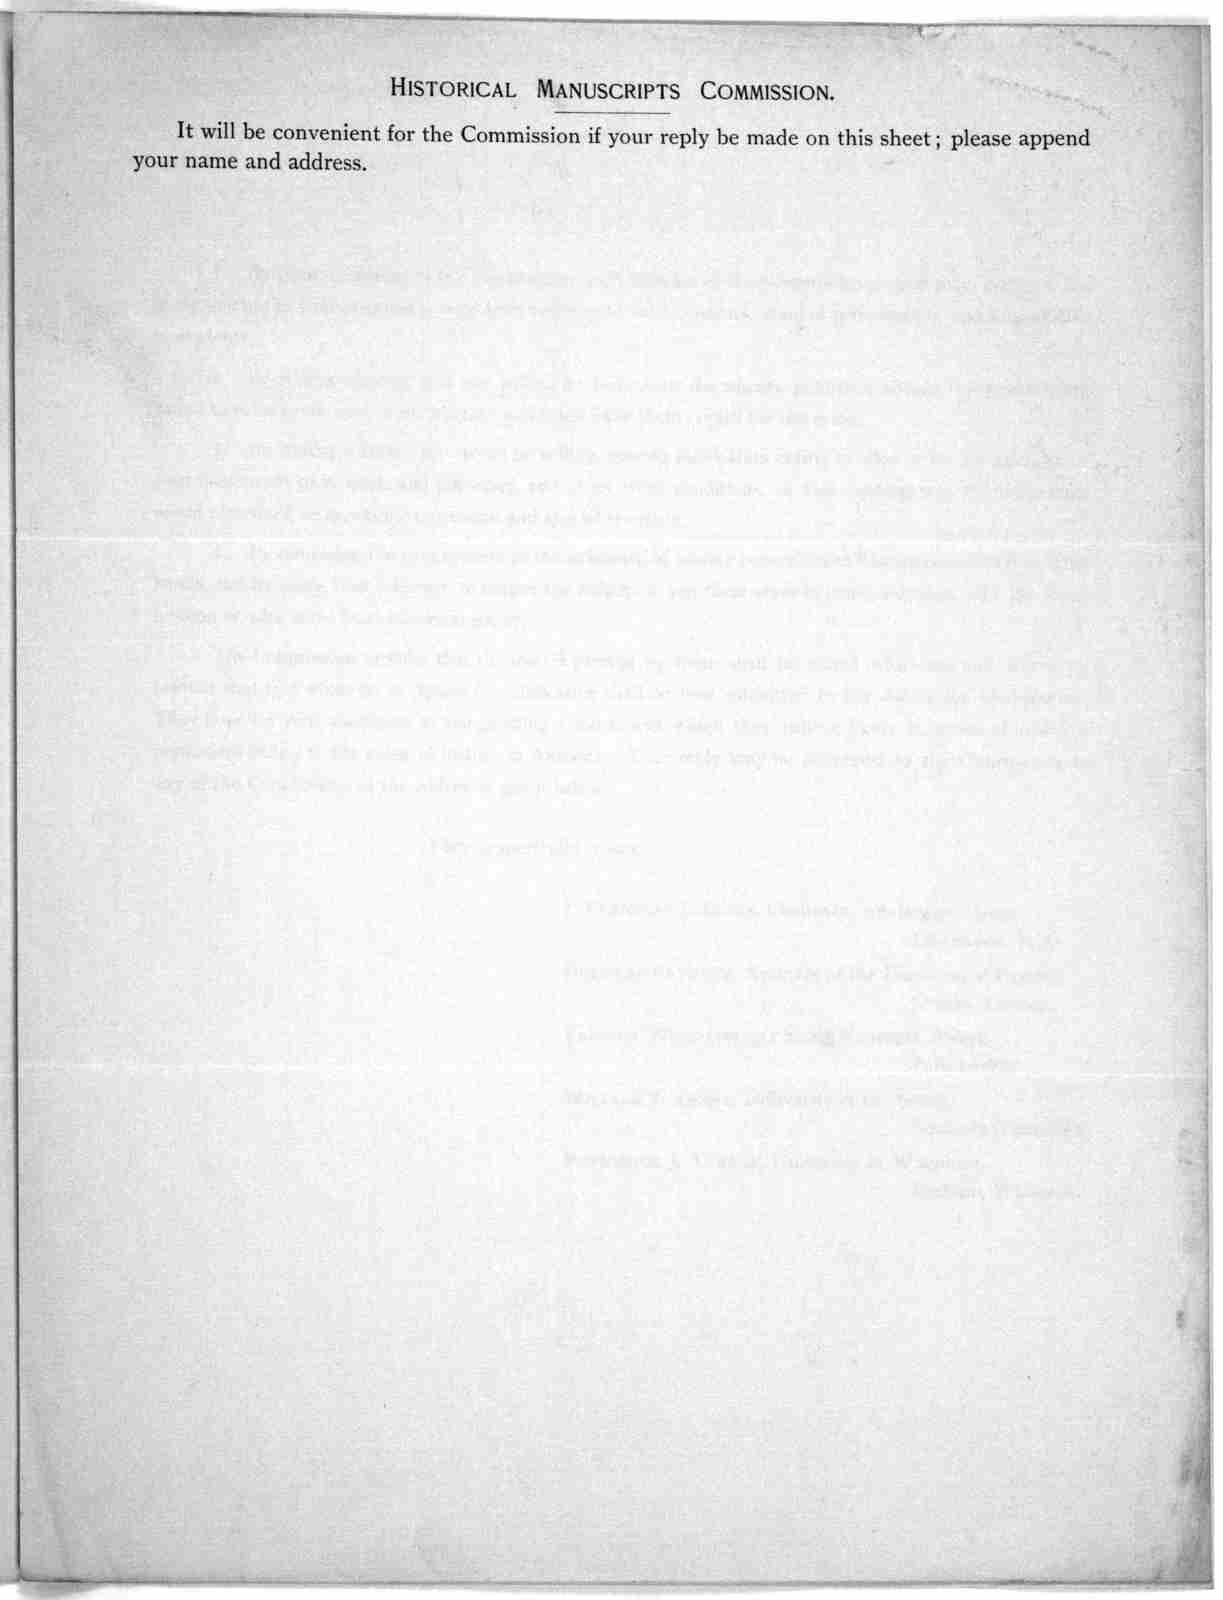 American historical association. Historical manuscripts commission. Circular to private individuals owning or having knowledge of unpublished documents of historical value. [n. p. n. d.].